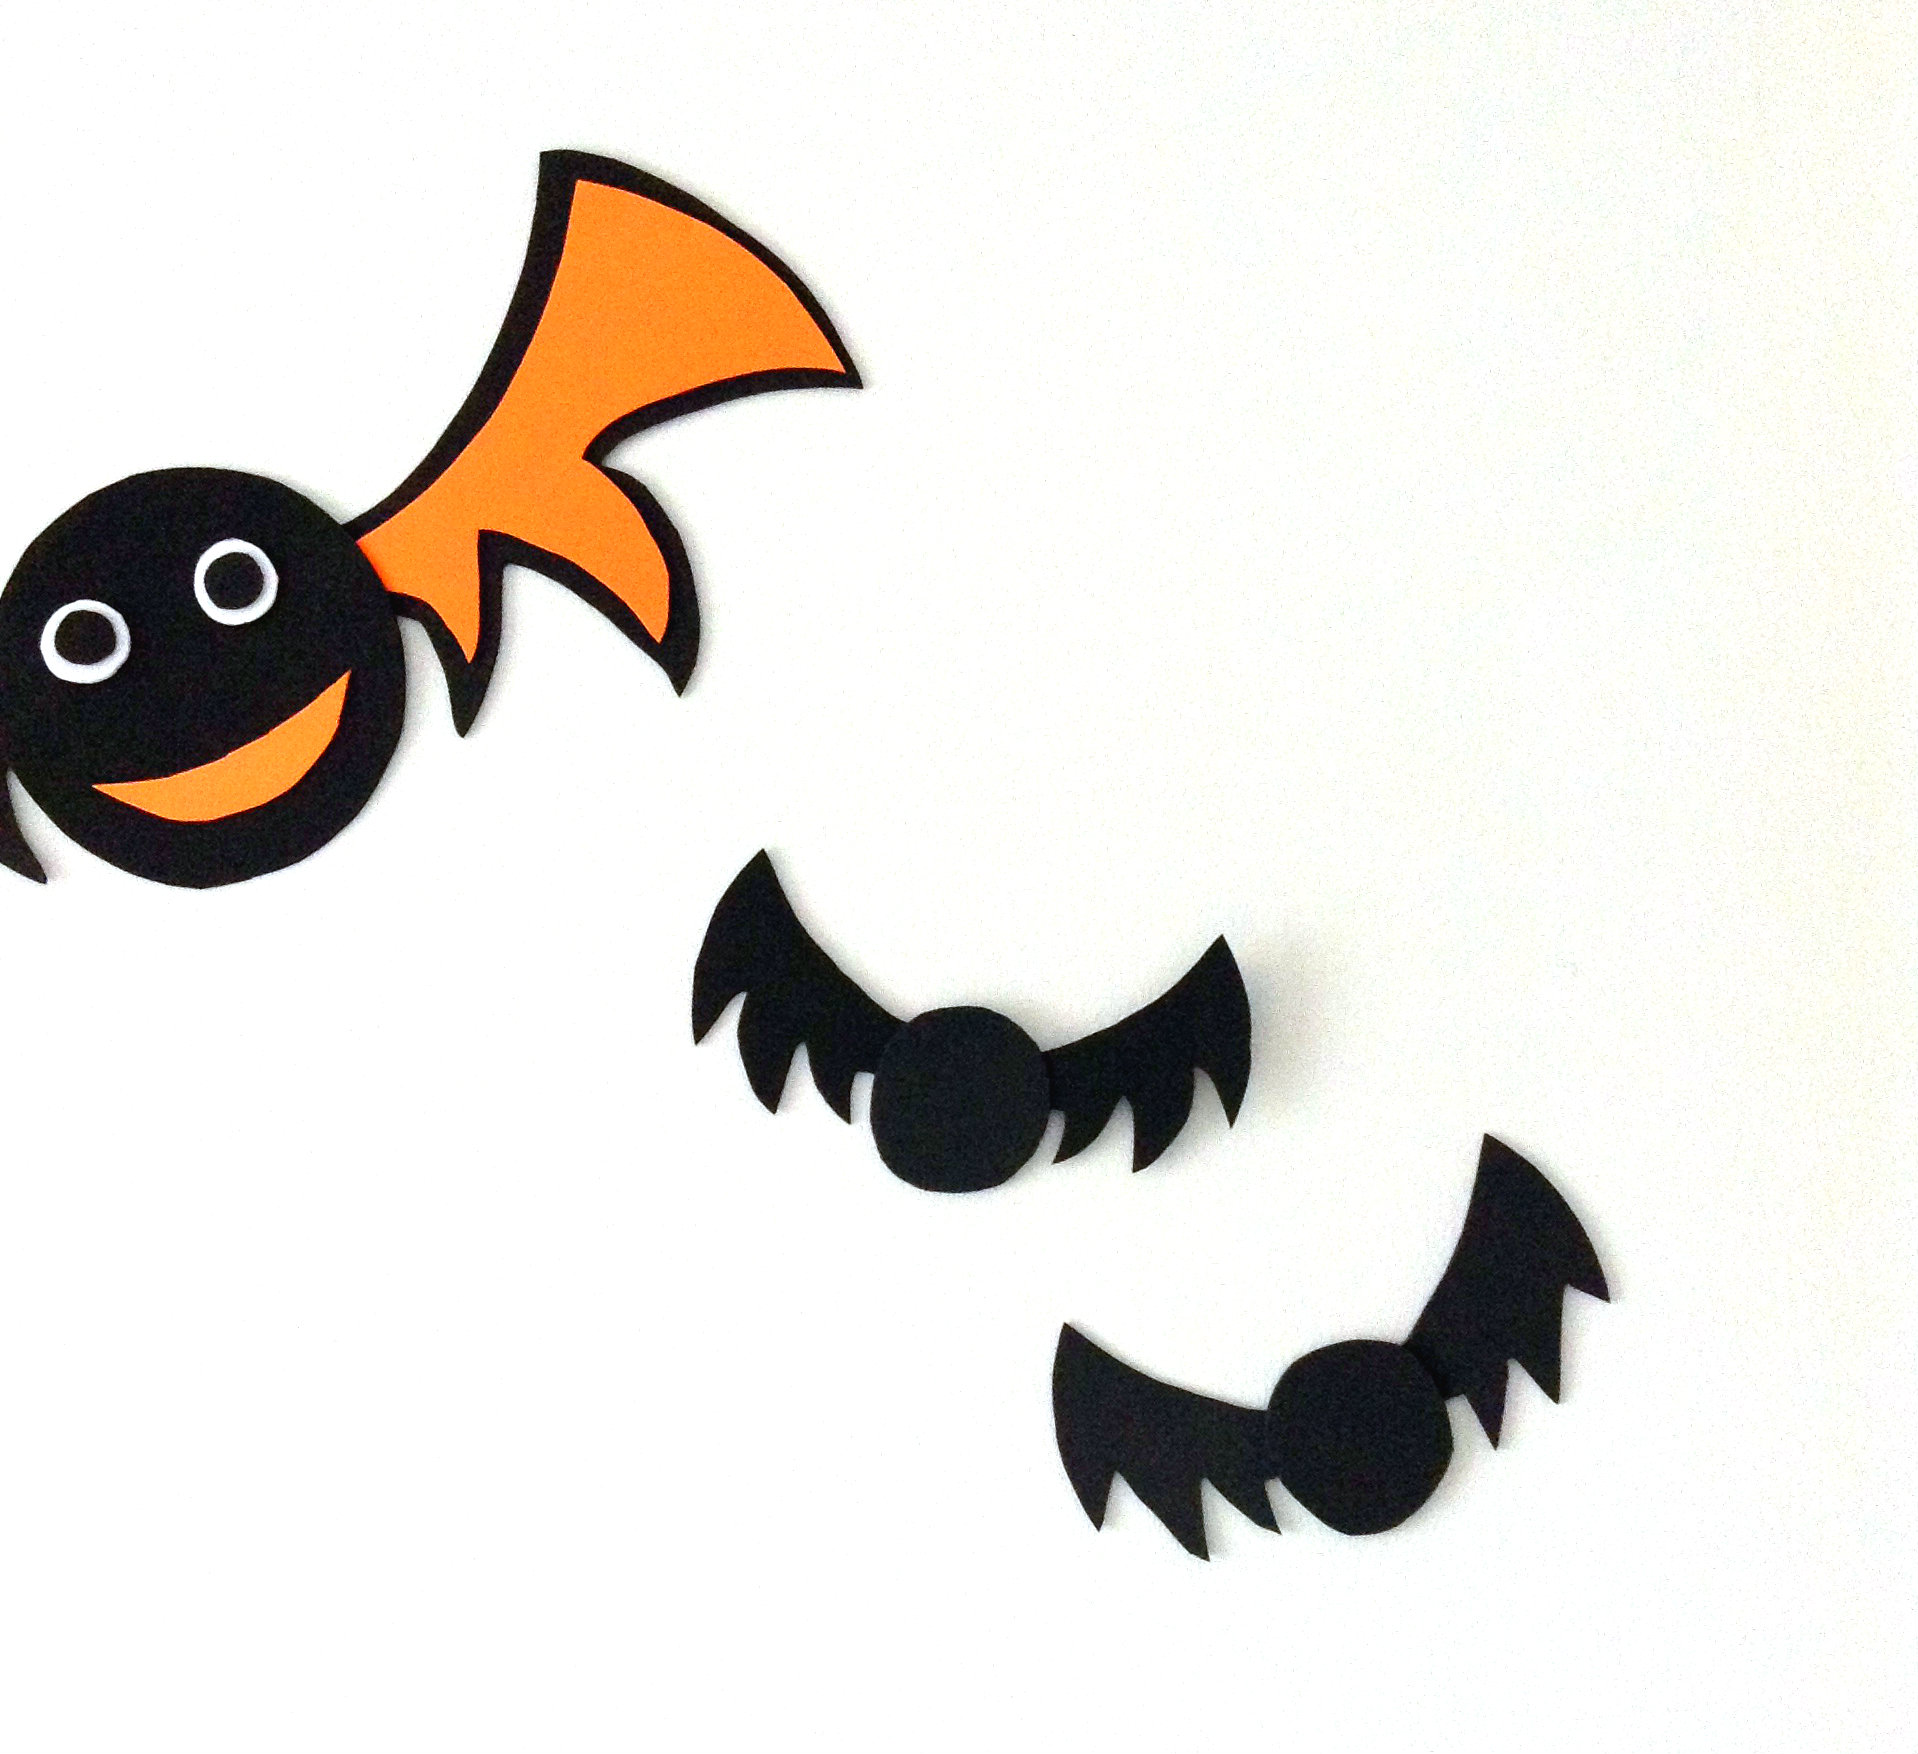 Faire sa deco d 39 halloween archives prettylittletruth for Deco halloween chauve souris